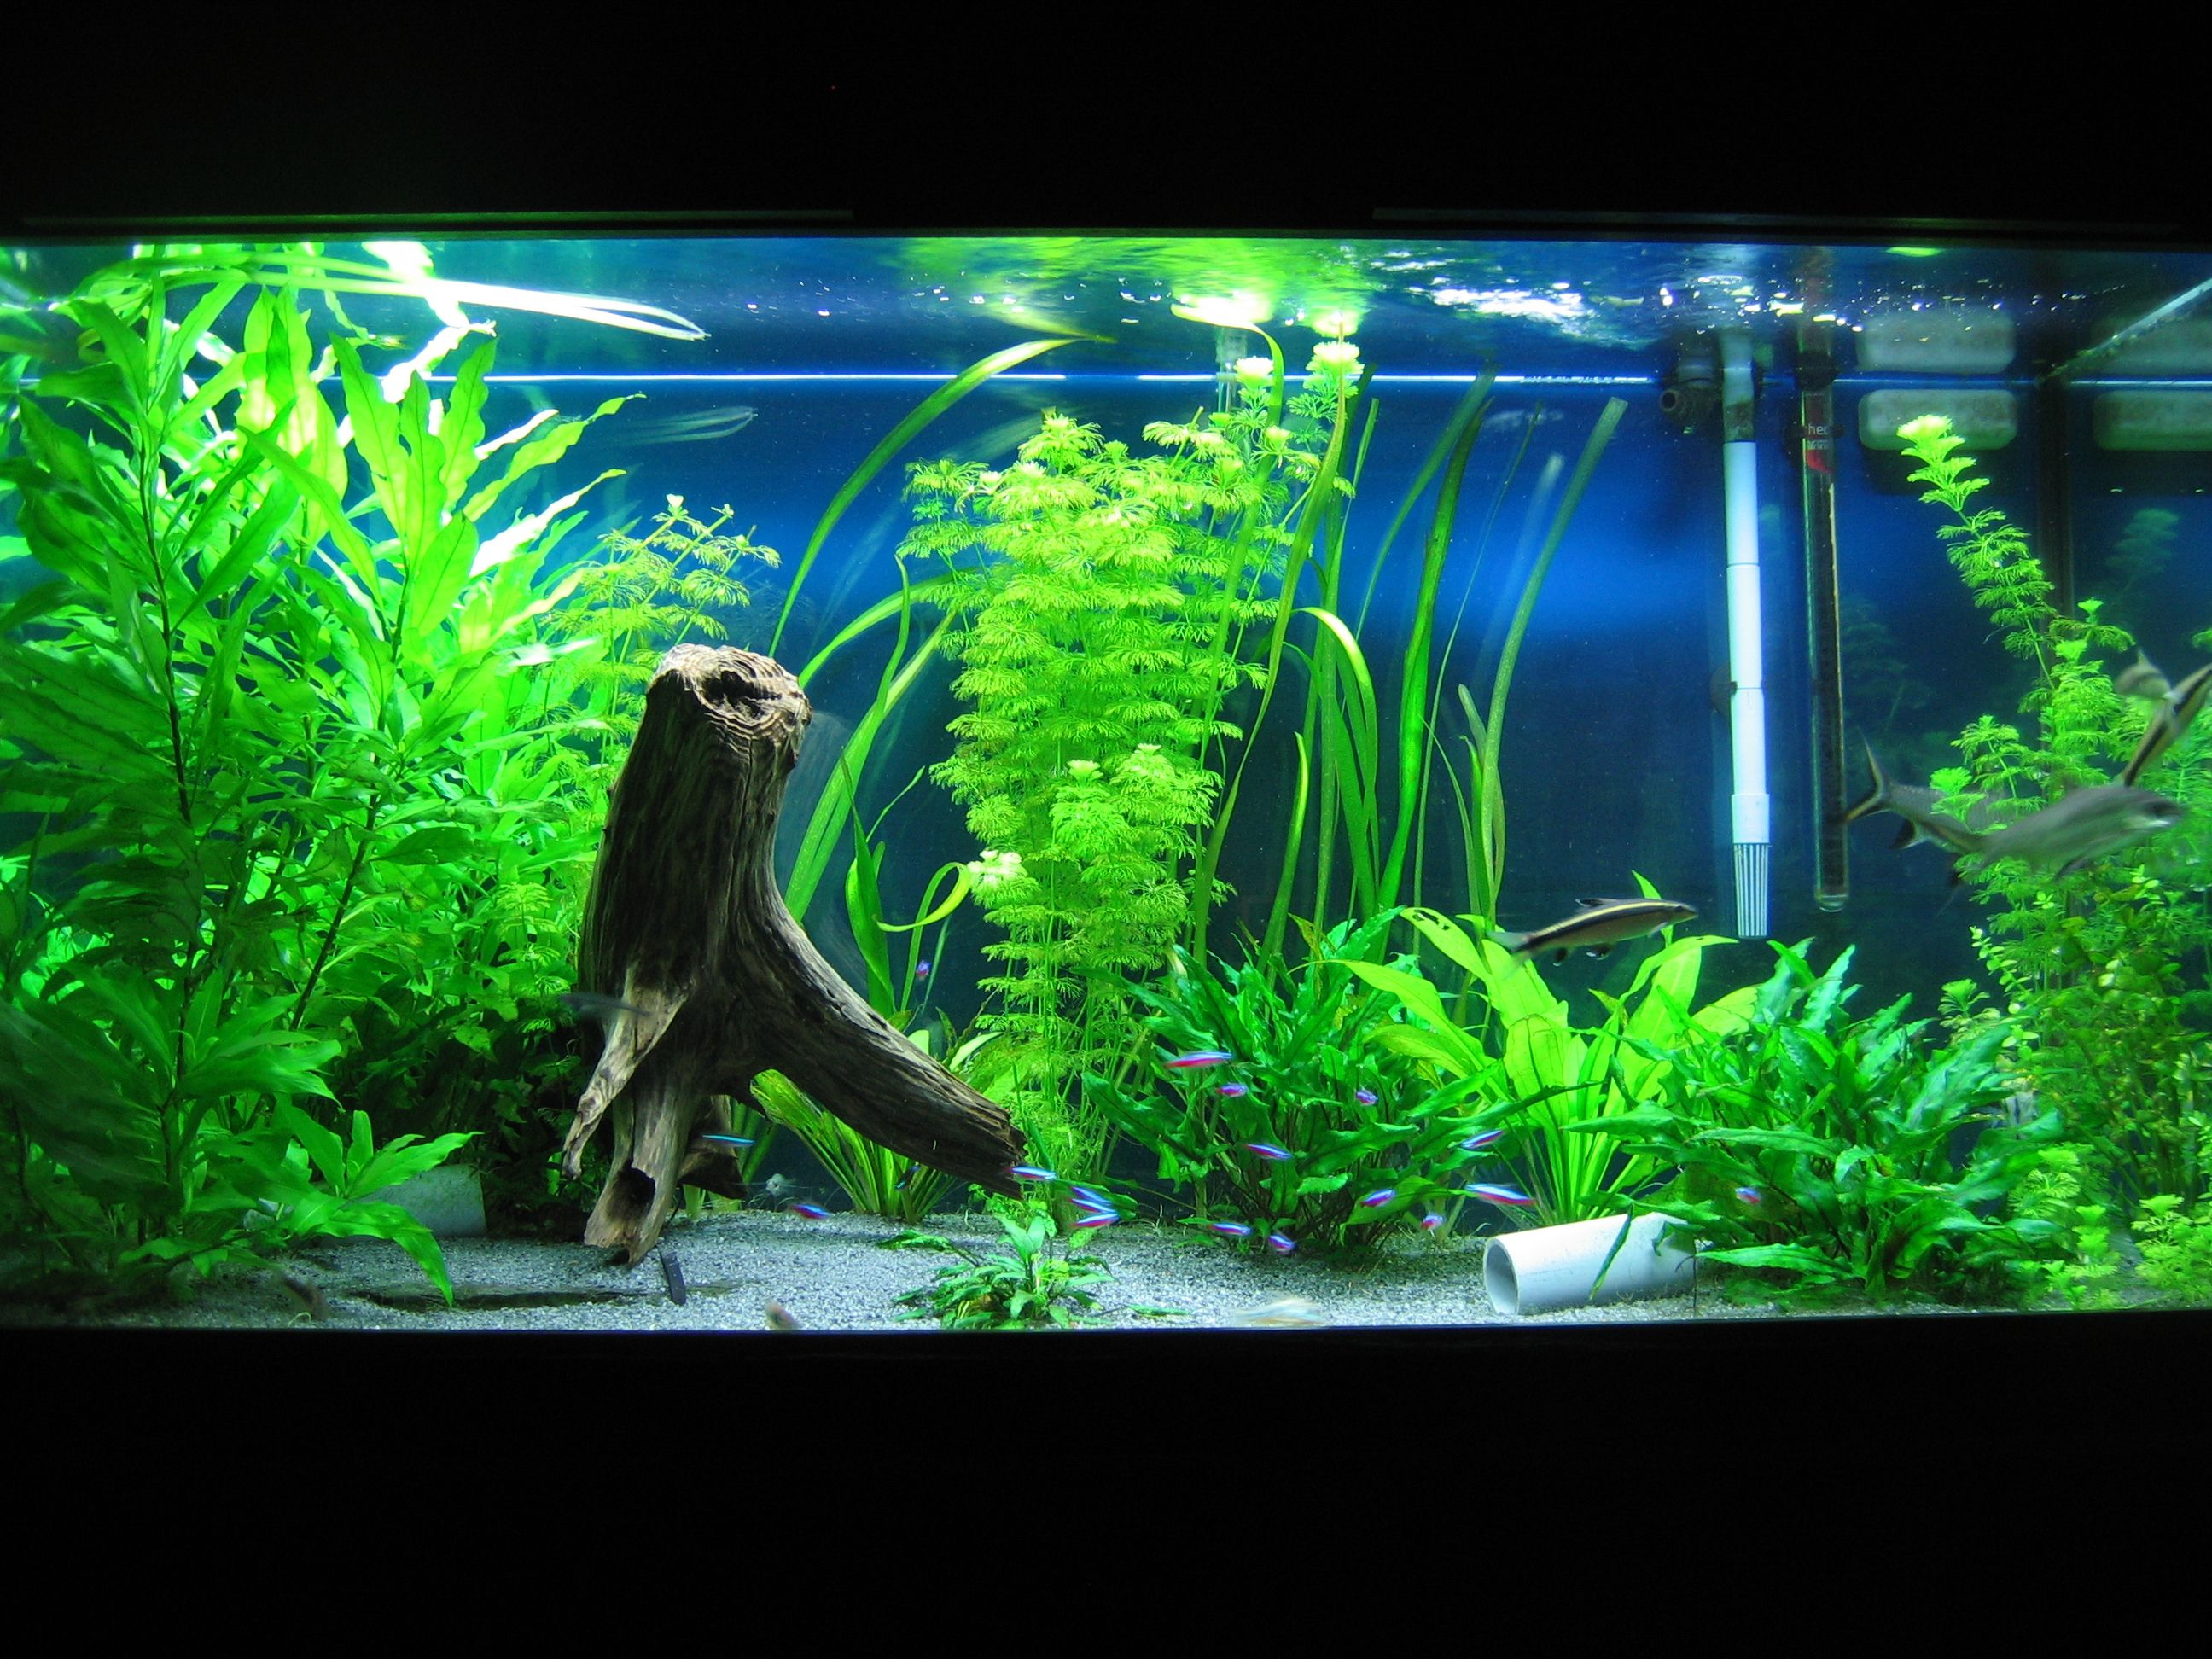 Freshwater aquarium odd fish - Fish Tank Decor Ideas